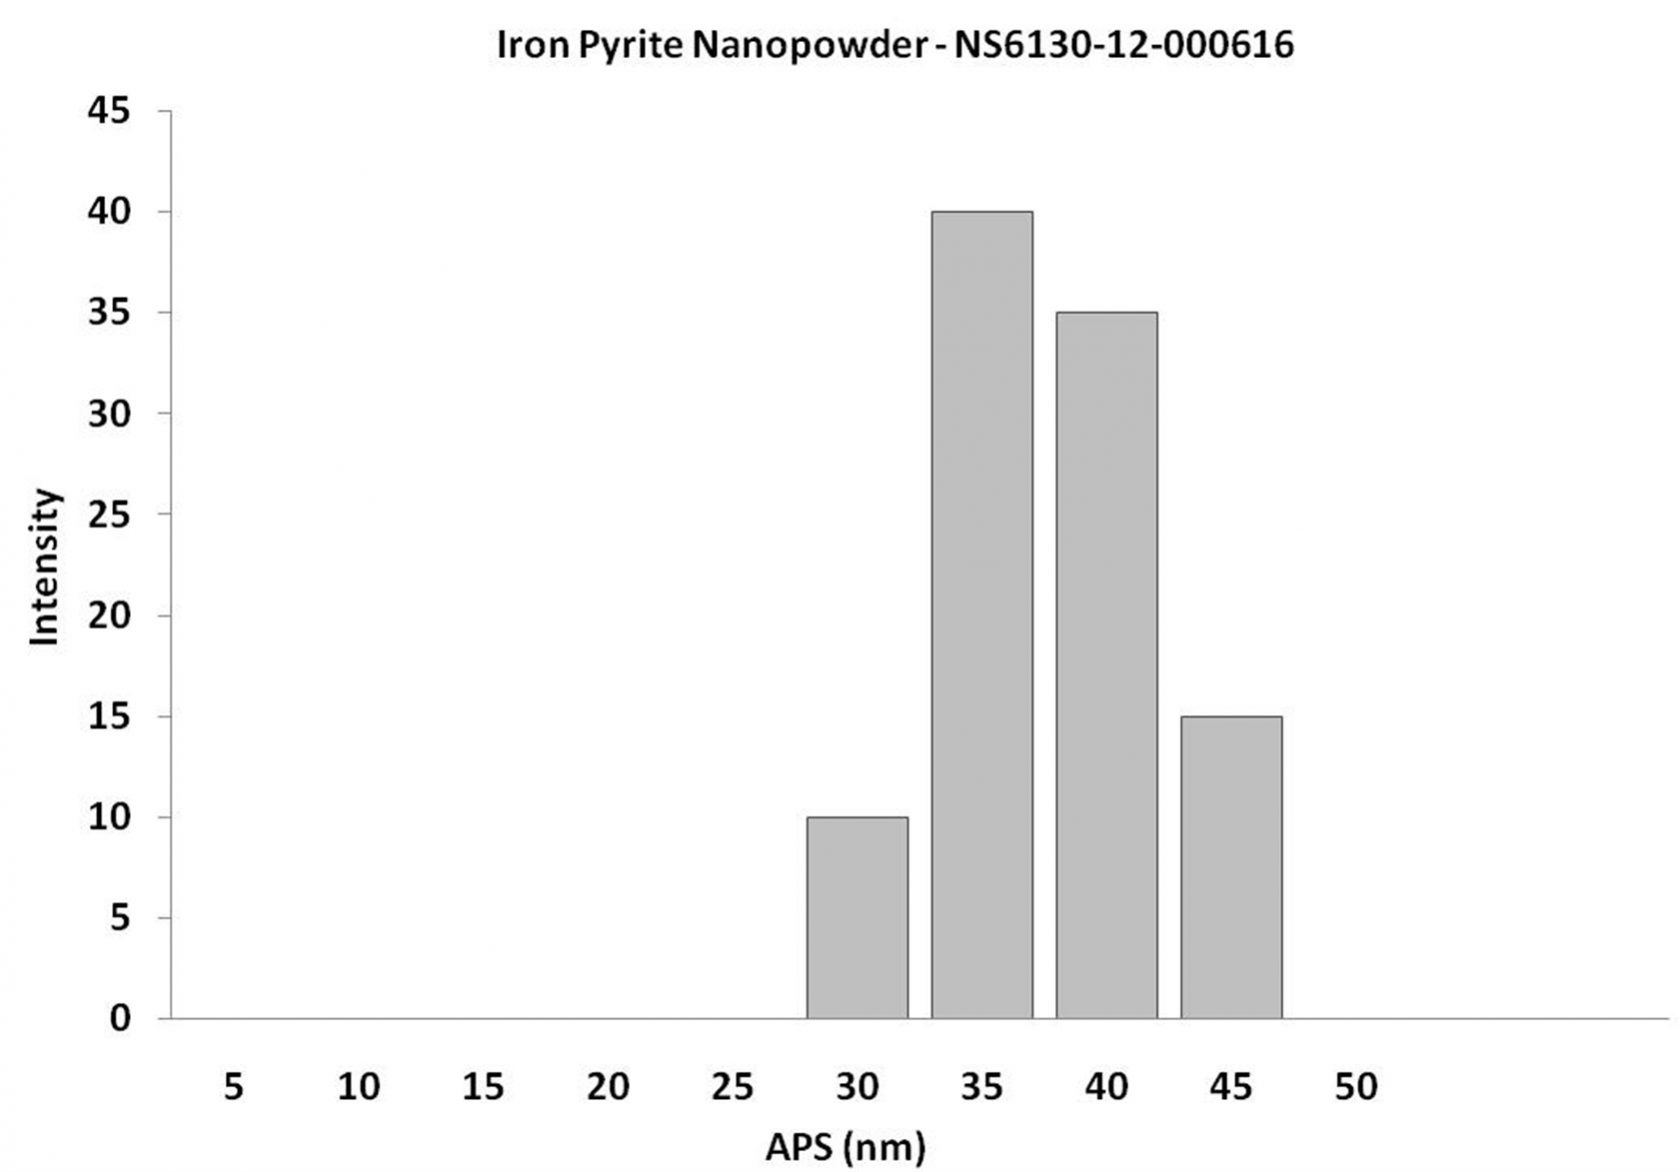 Particles Size Analysis - Neodymium Iron Boron Nanoparticles